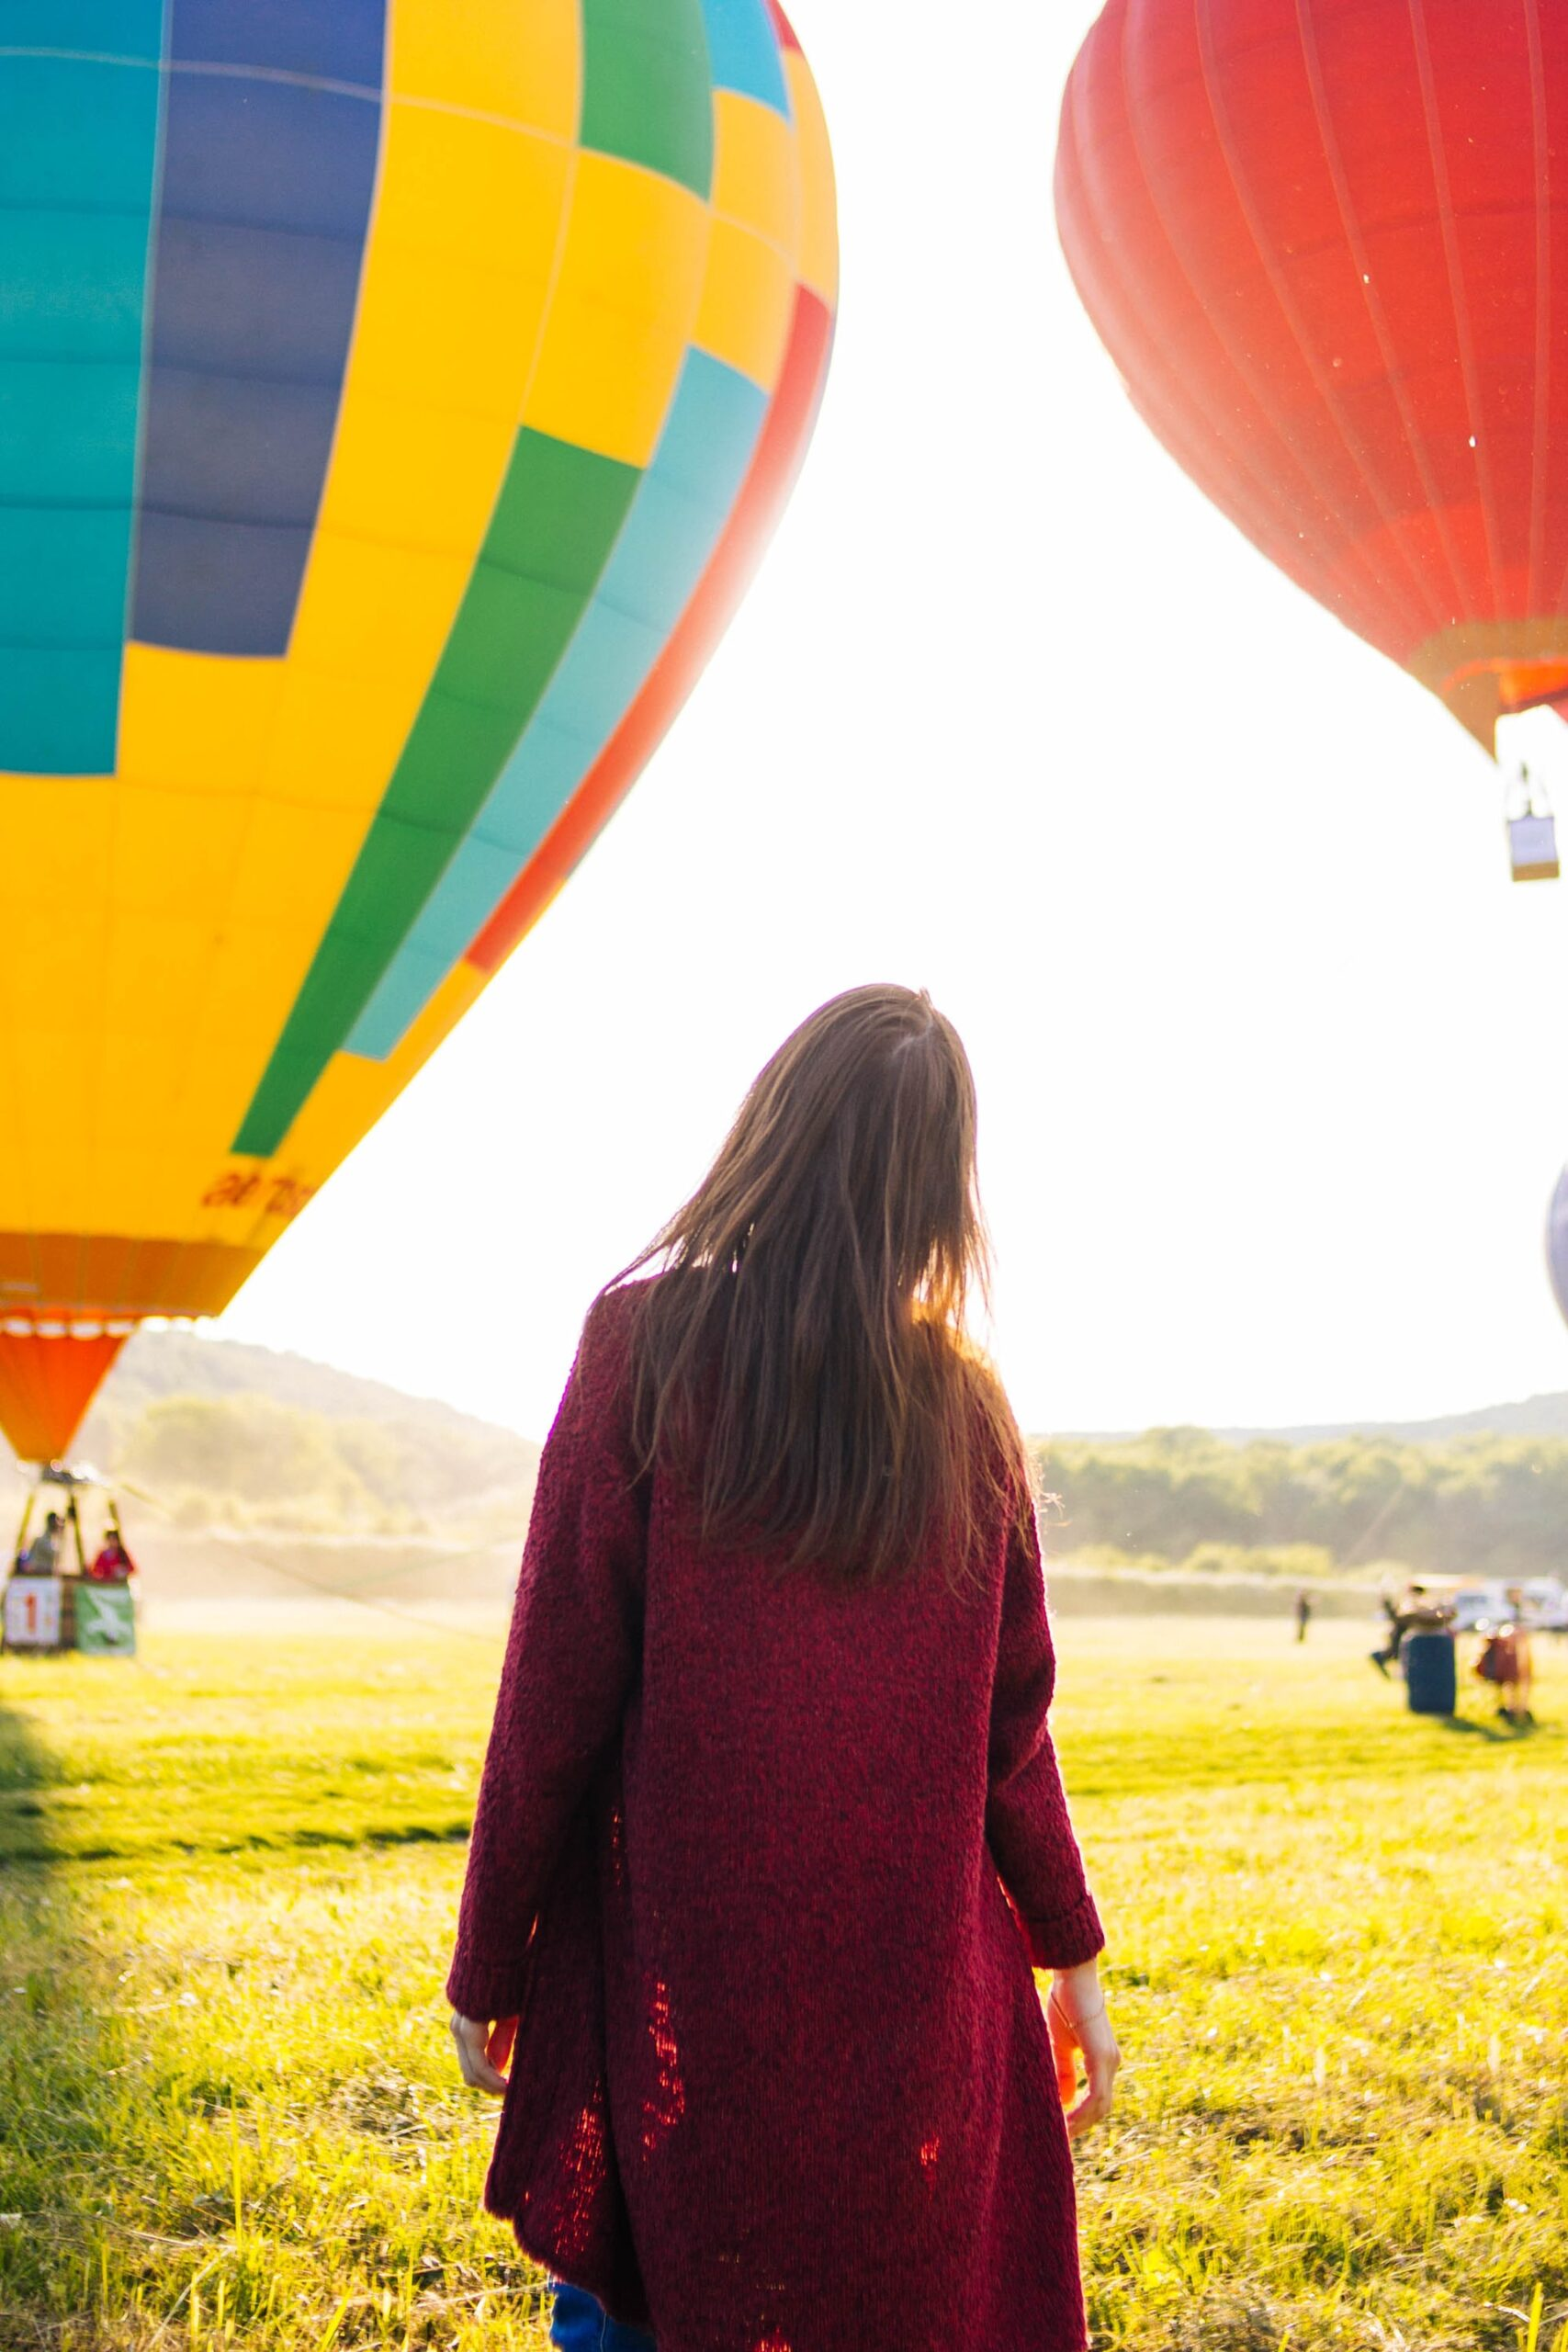 woman in a field with air balloons